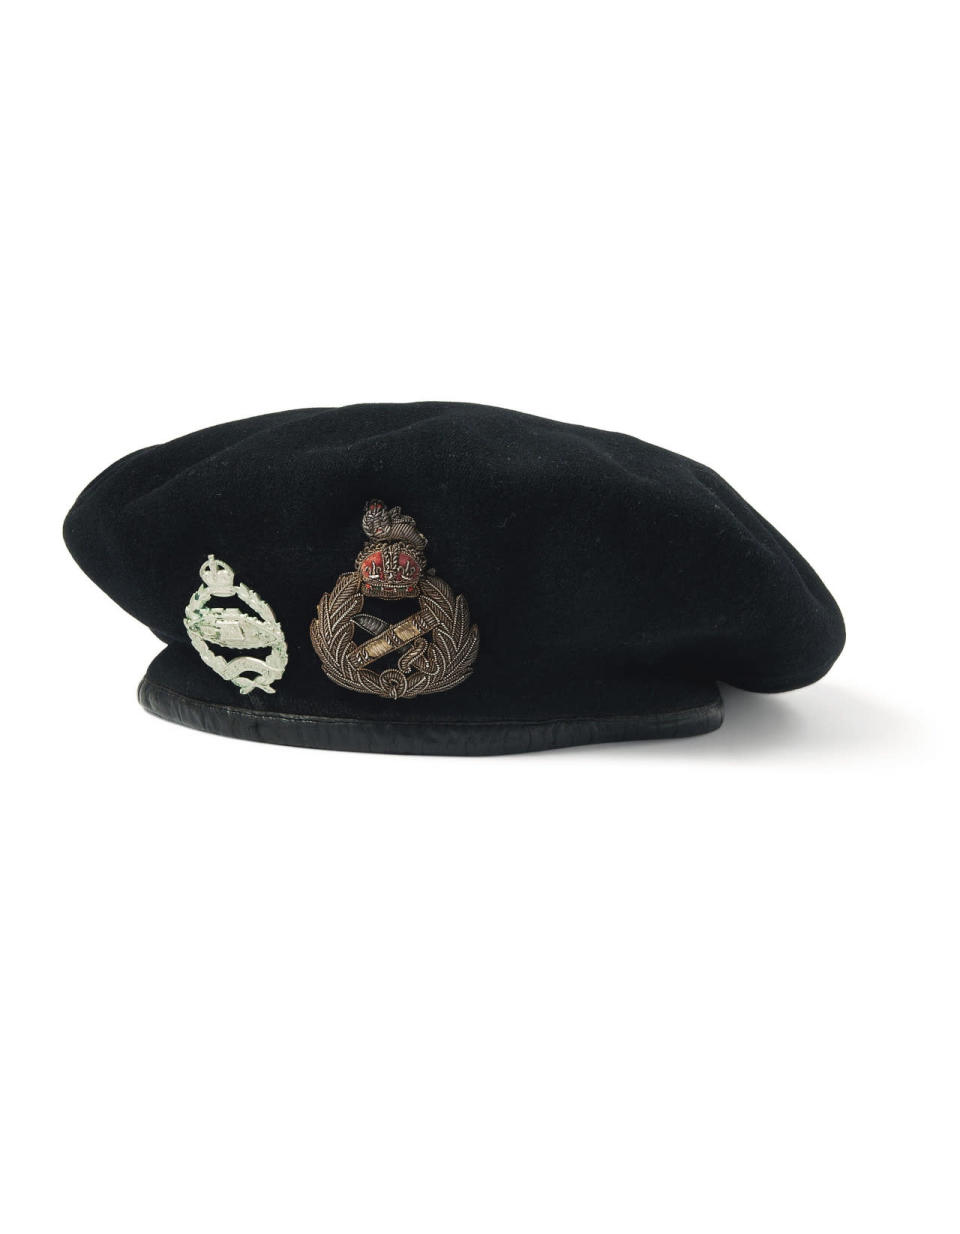 <p> A beret belonging to Field Marshal Bernard Montgomery will be going under the hammer. (David Gainsborough Roberts Collection/Christie's/PA Wire)</p>